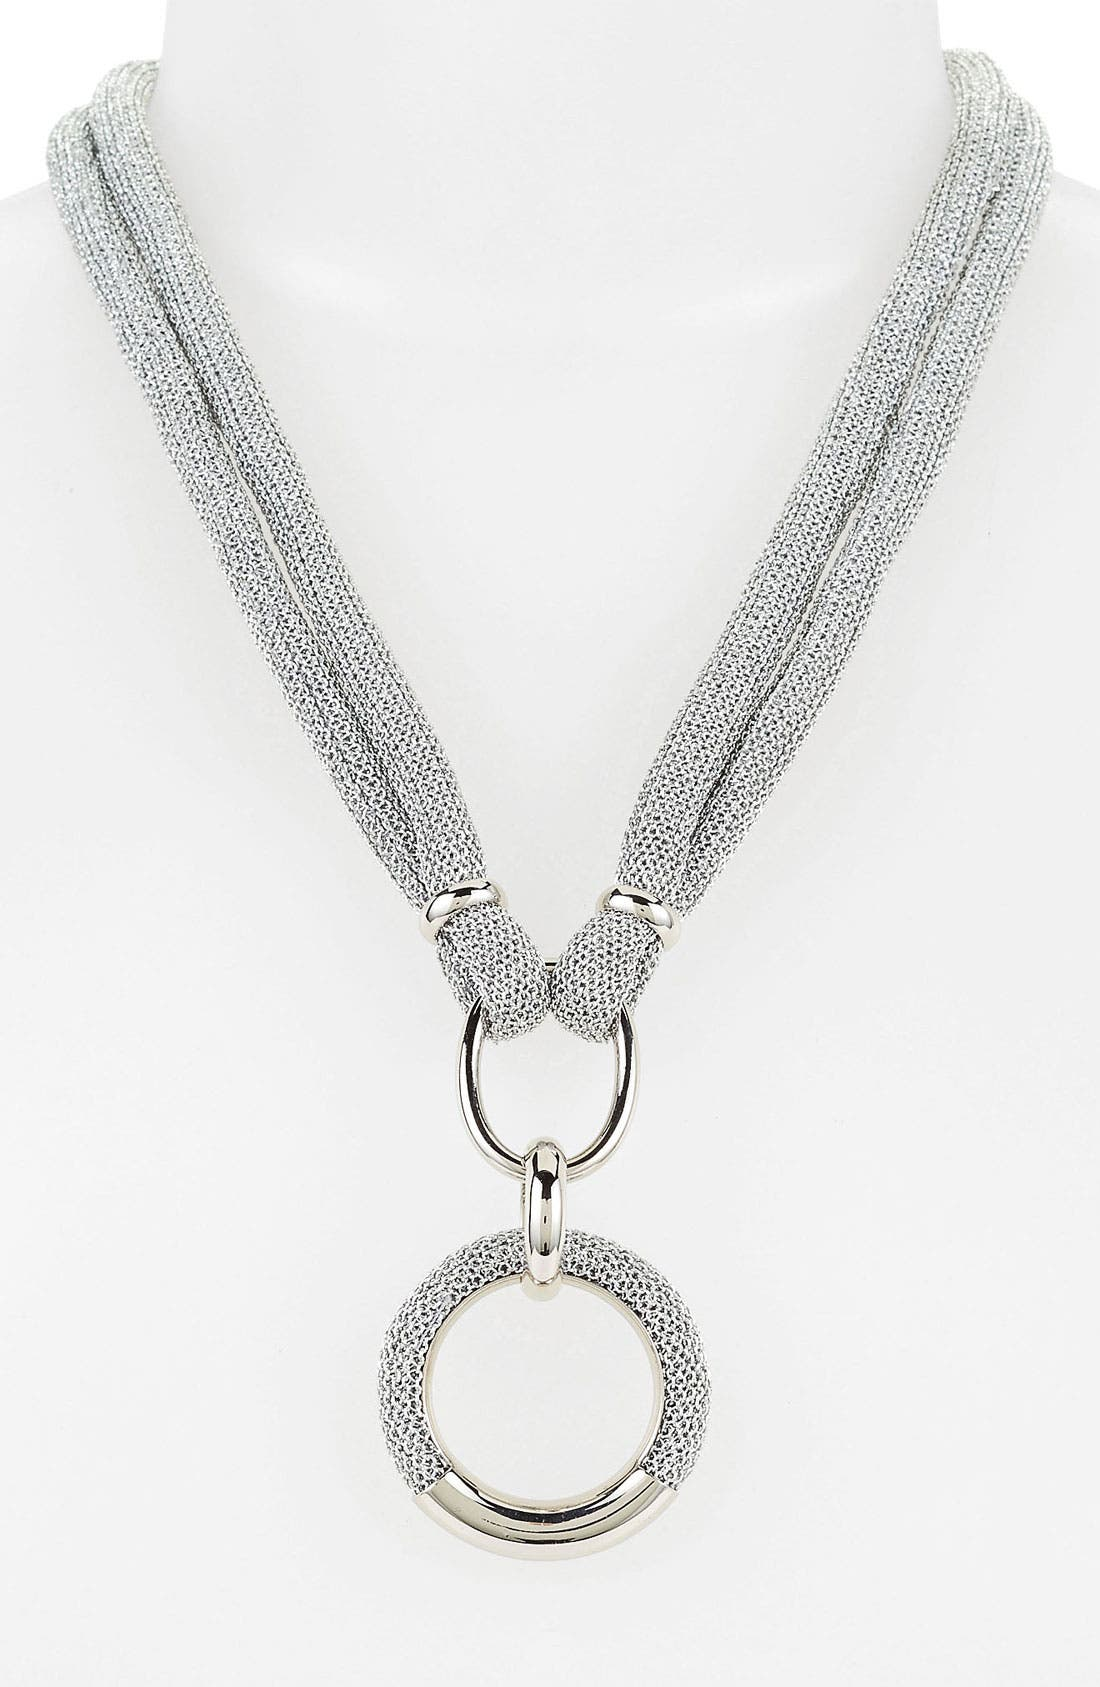 Alternate Image 1 Selected - Adami & Martucci 'Mesh' Pendant Necklace (Nordstrom Exclusive)